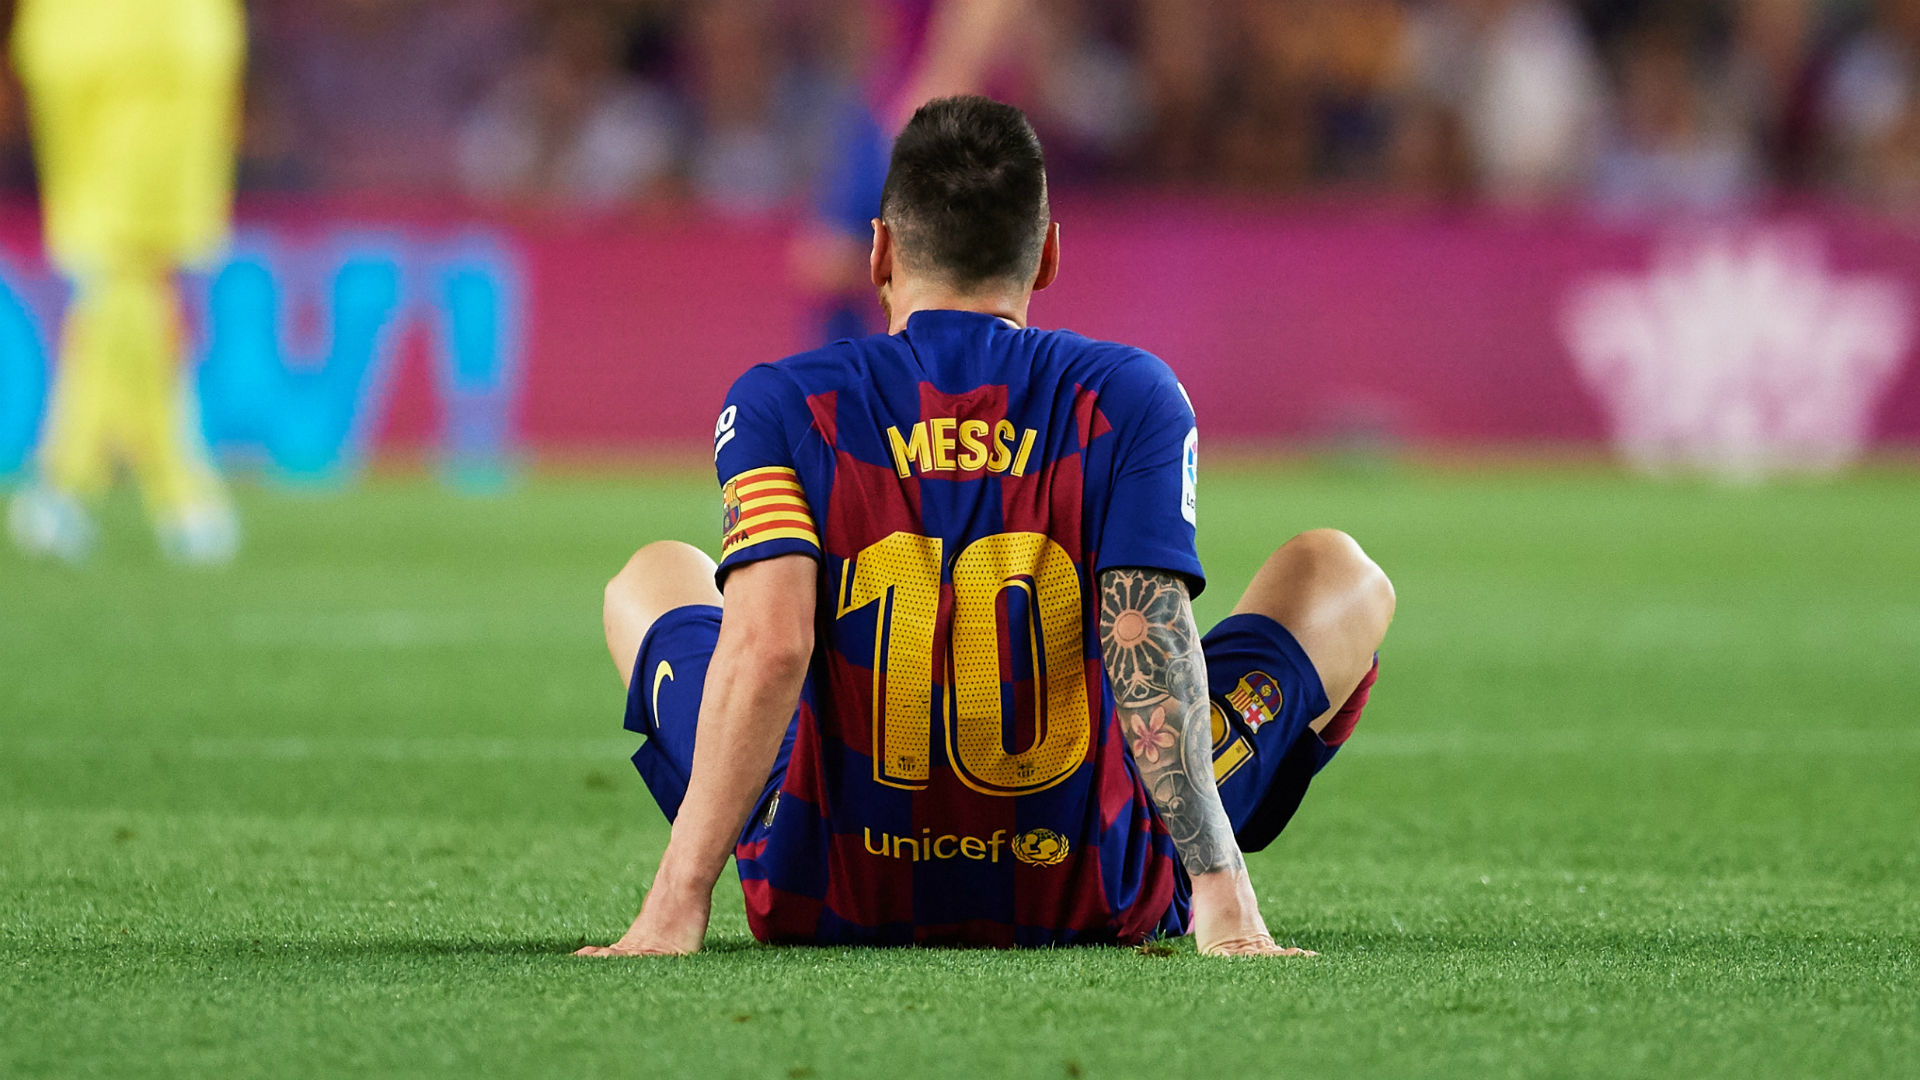 Barcelona confirm Messi thigh injury